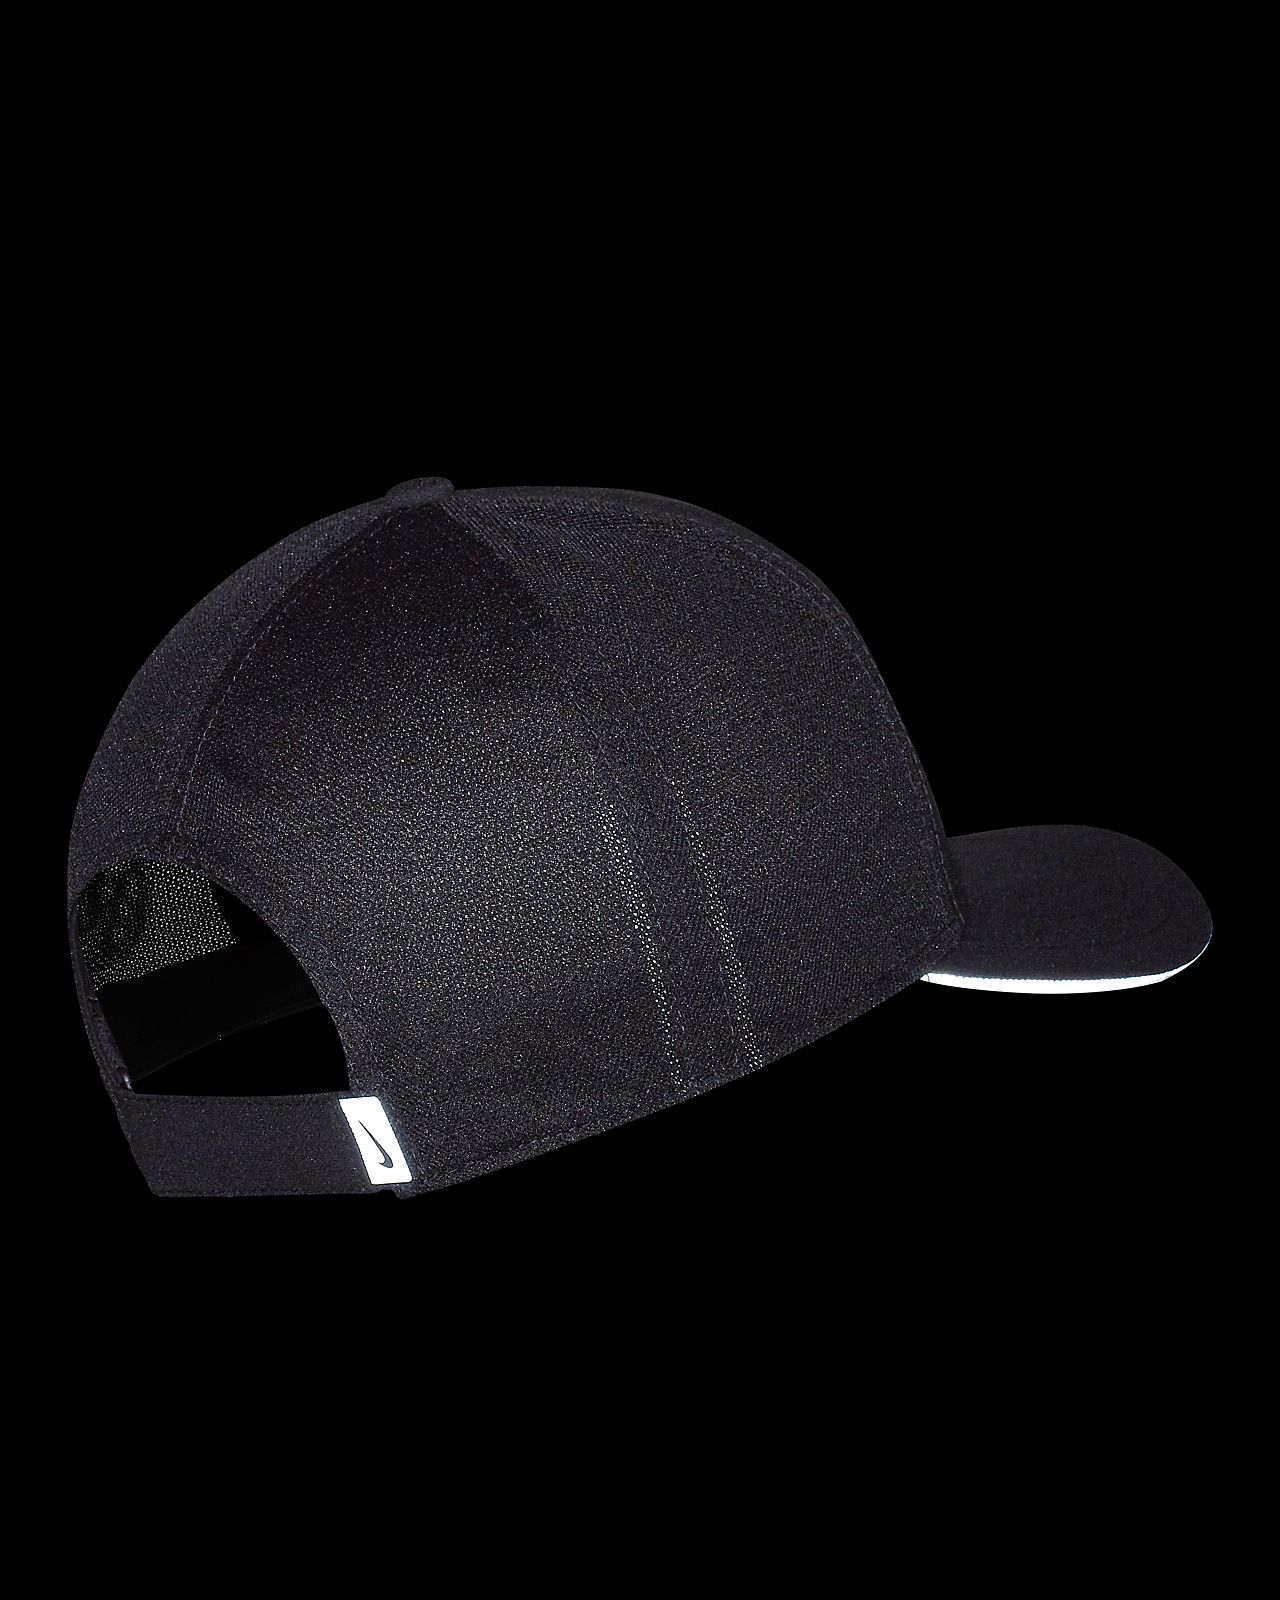 6cd392f0dfcc8 Low Resolution Nike Classic99 Running Cap Nike Classic99 Running Cap